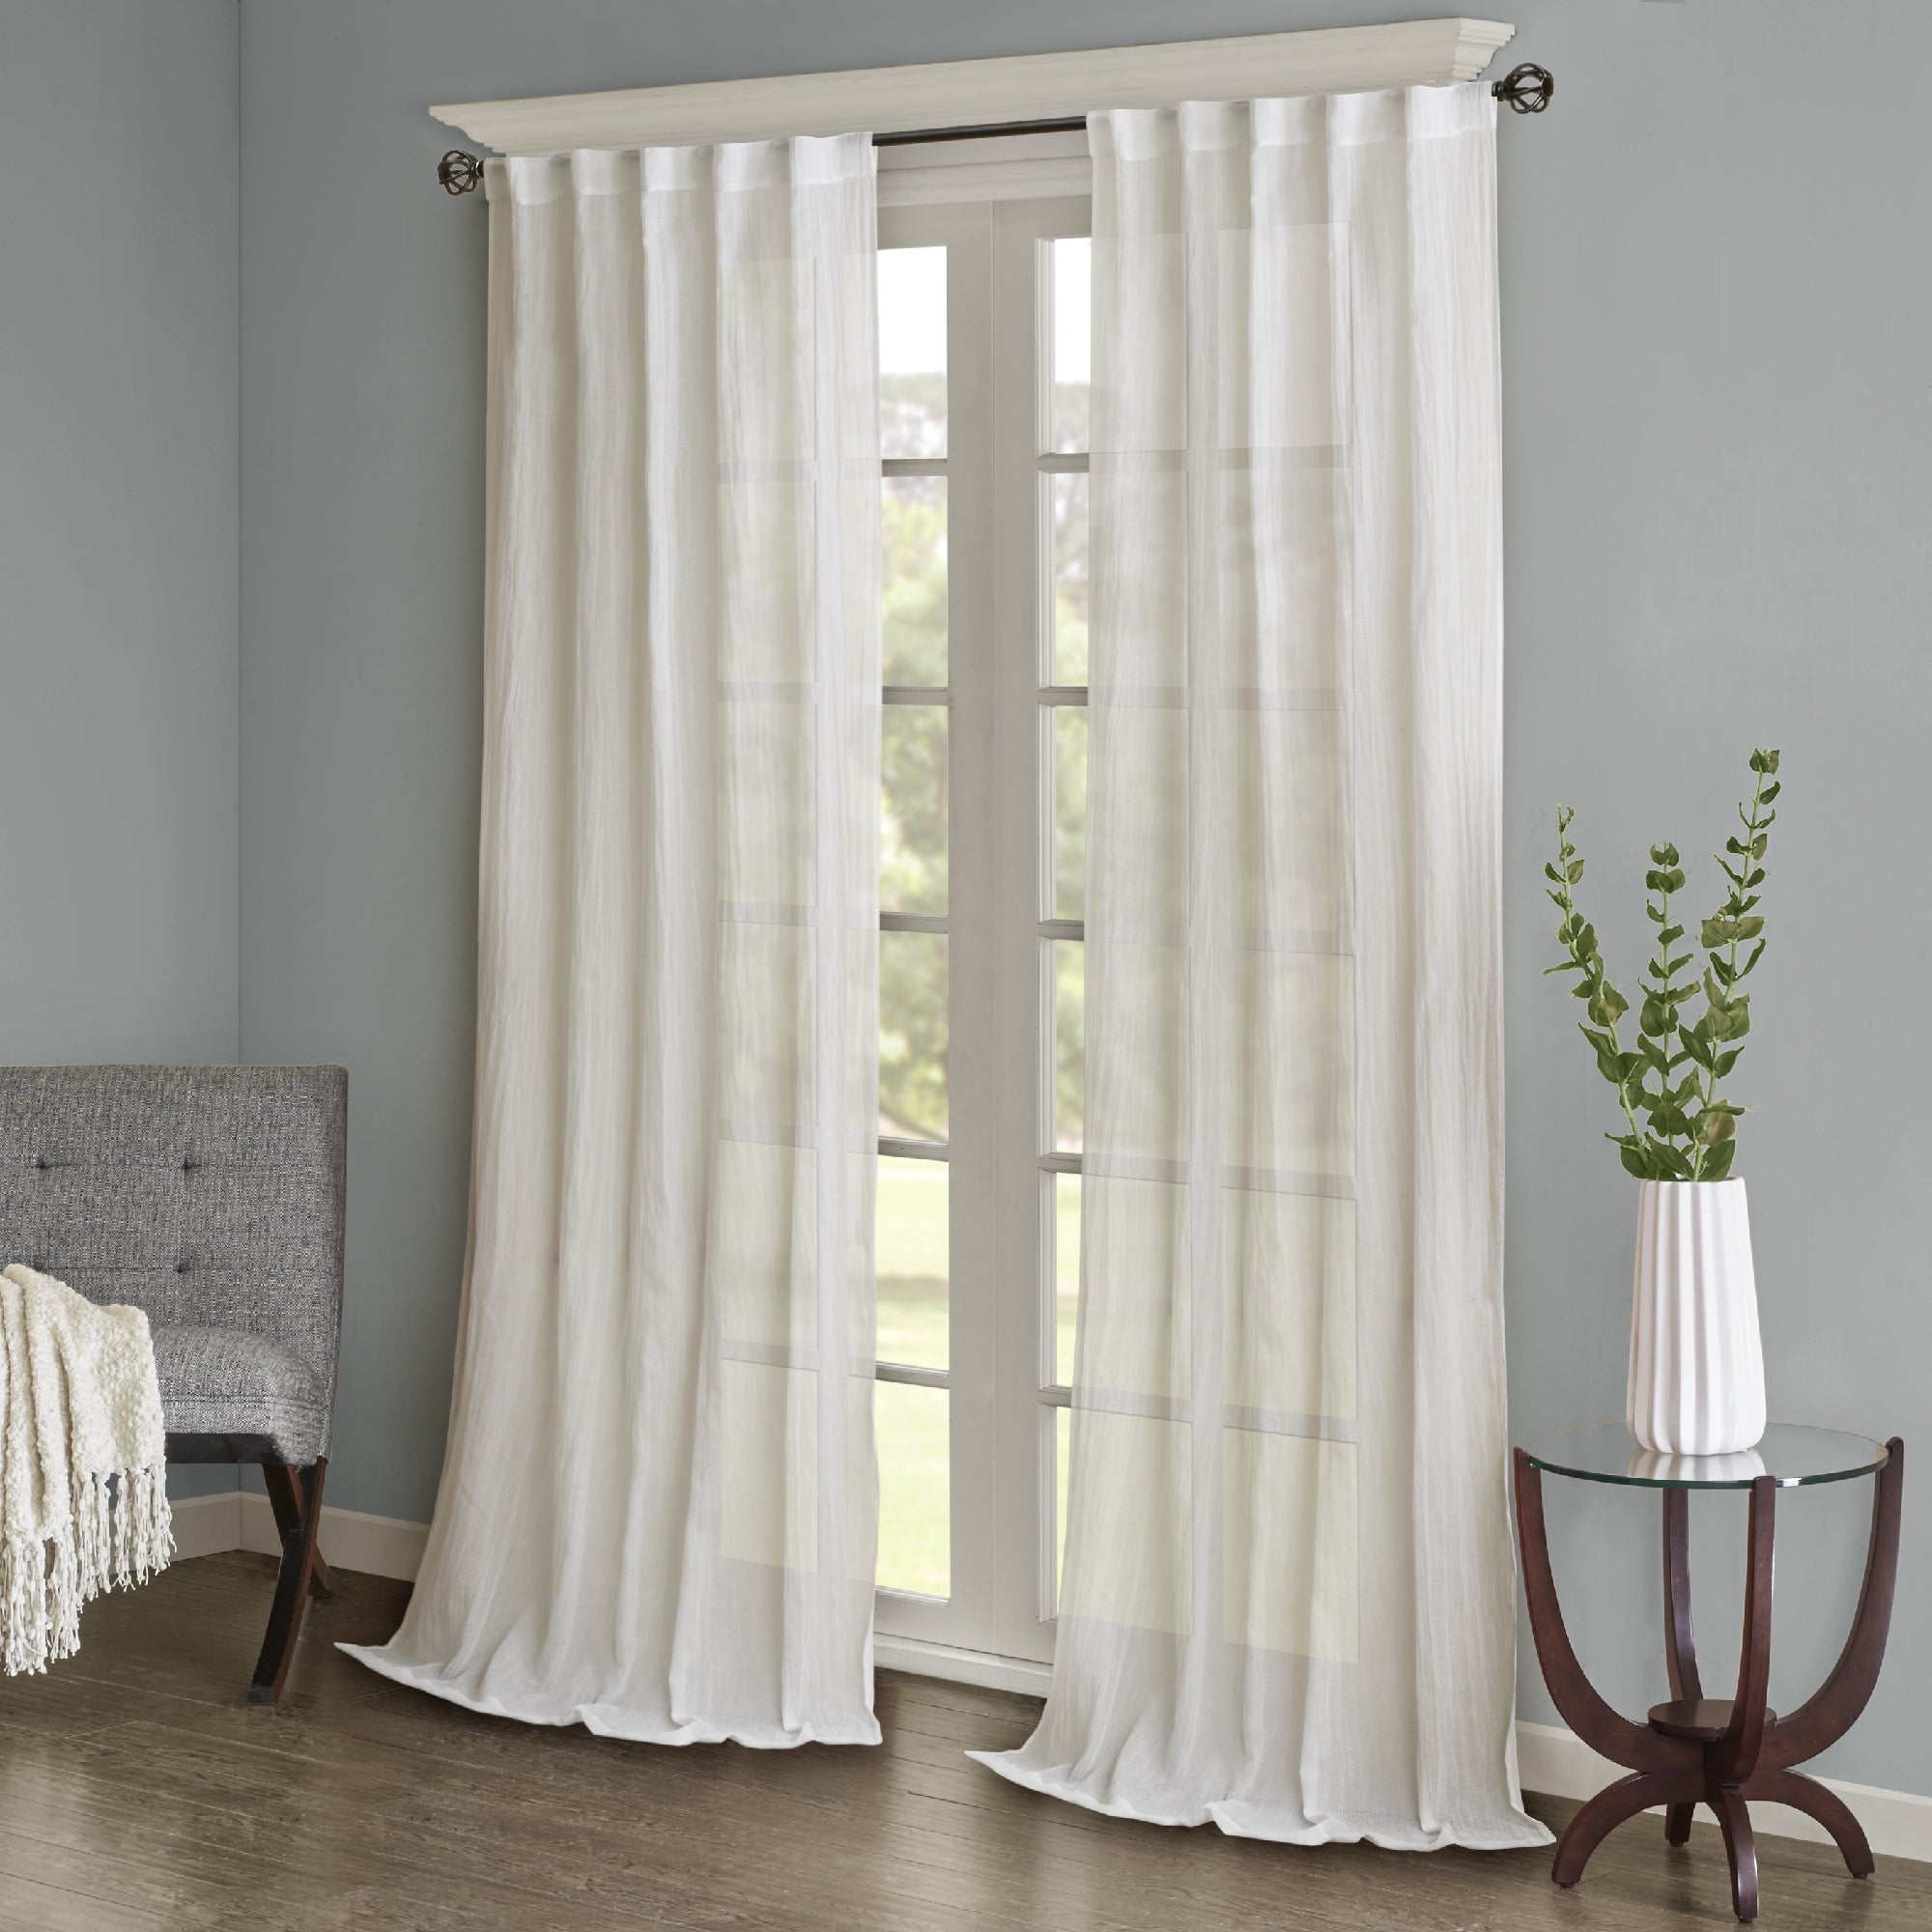 Madison Park Kaylee Solid Crushed Sheer Window Curtain Pair Intended For Recent Kaylee Solid Crushed Sheer Window Curtain Pairs (Gallery 2 of 20)